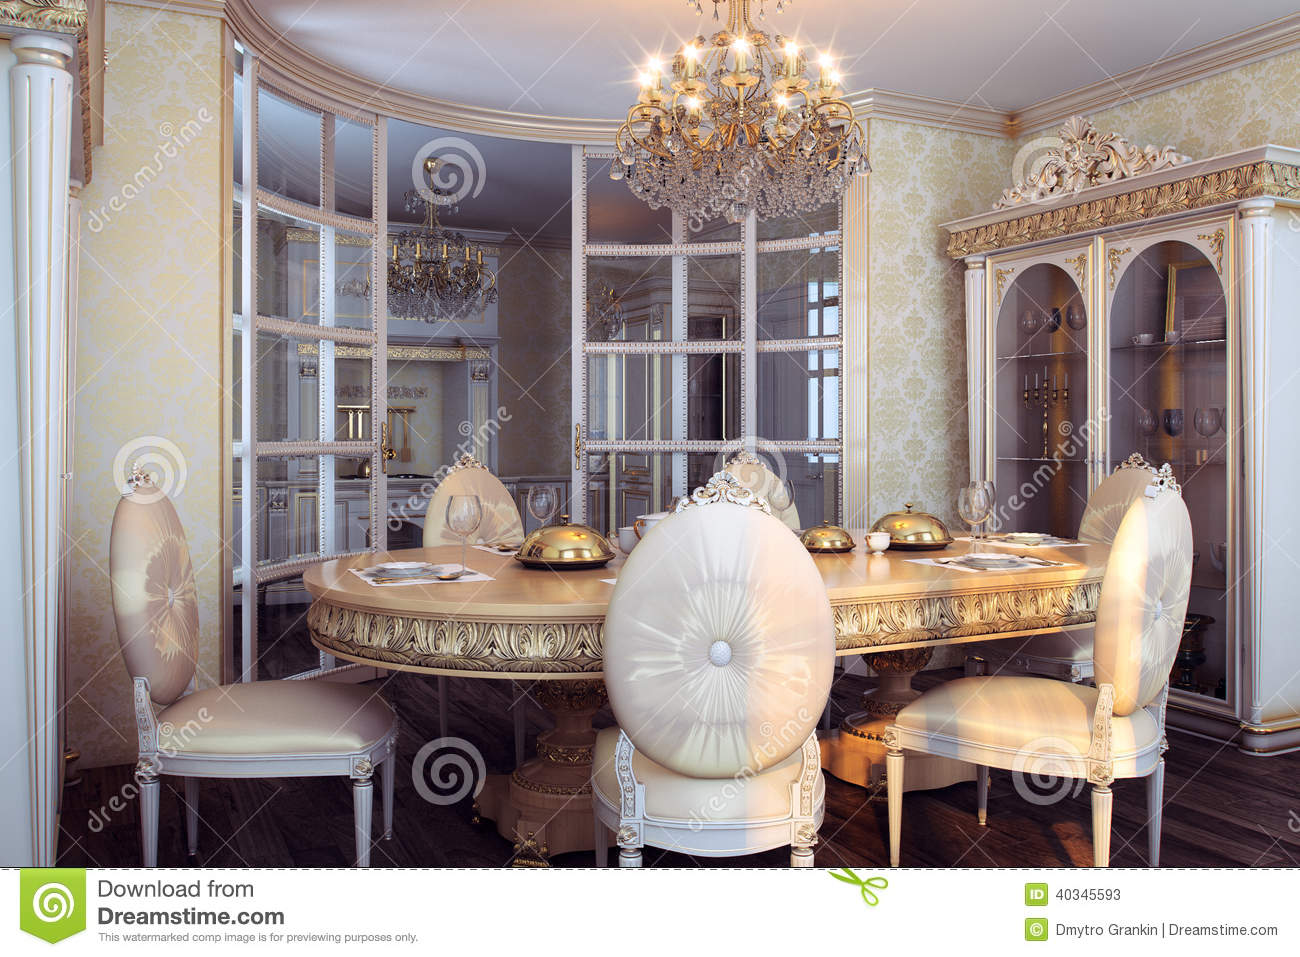 royal furniture in luxury baroque interior stock photo image 40345593. Black Bedroom Furniture Sets. Home Design Ideas